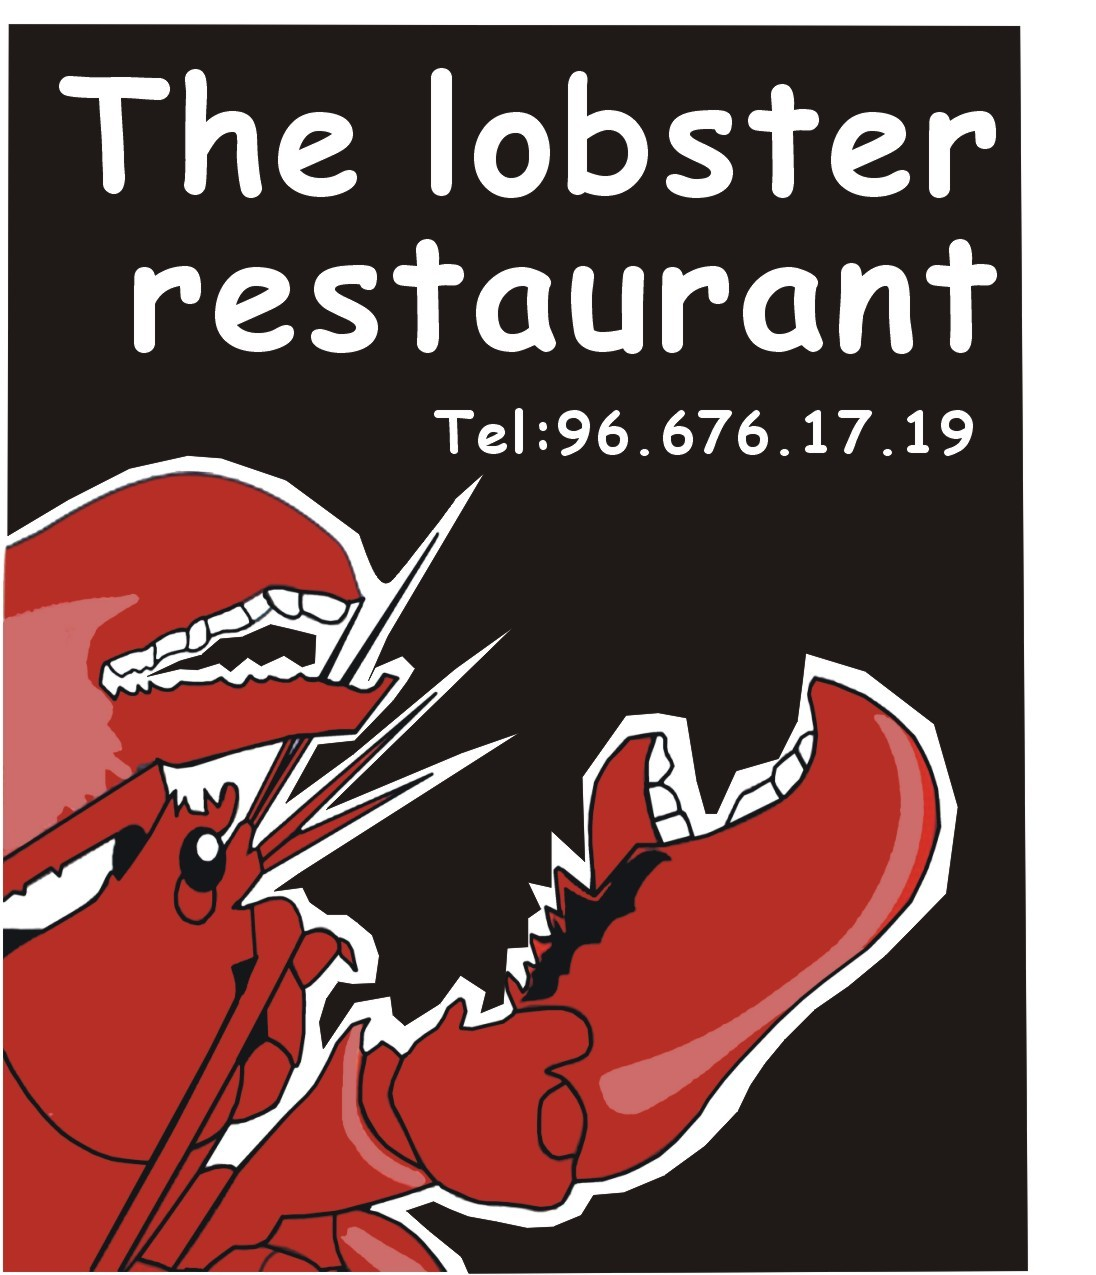 Job vacancy: The lobster restaurant is looking for waiting staff